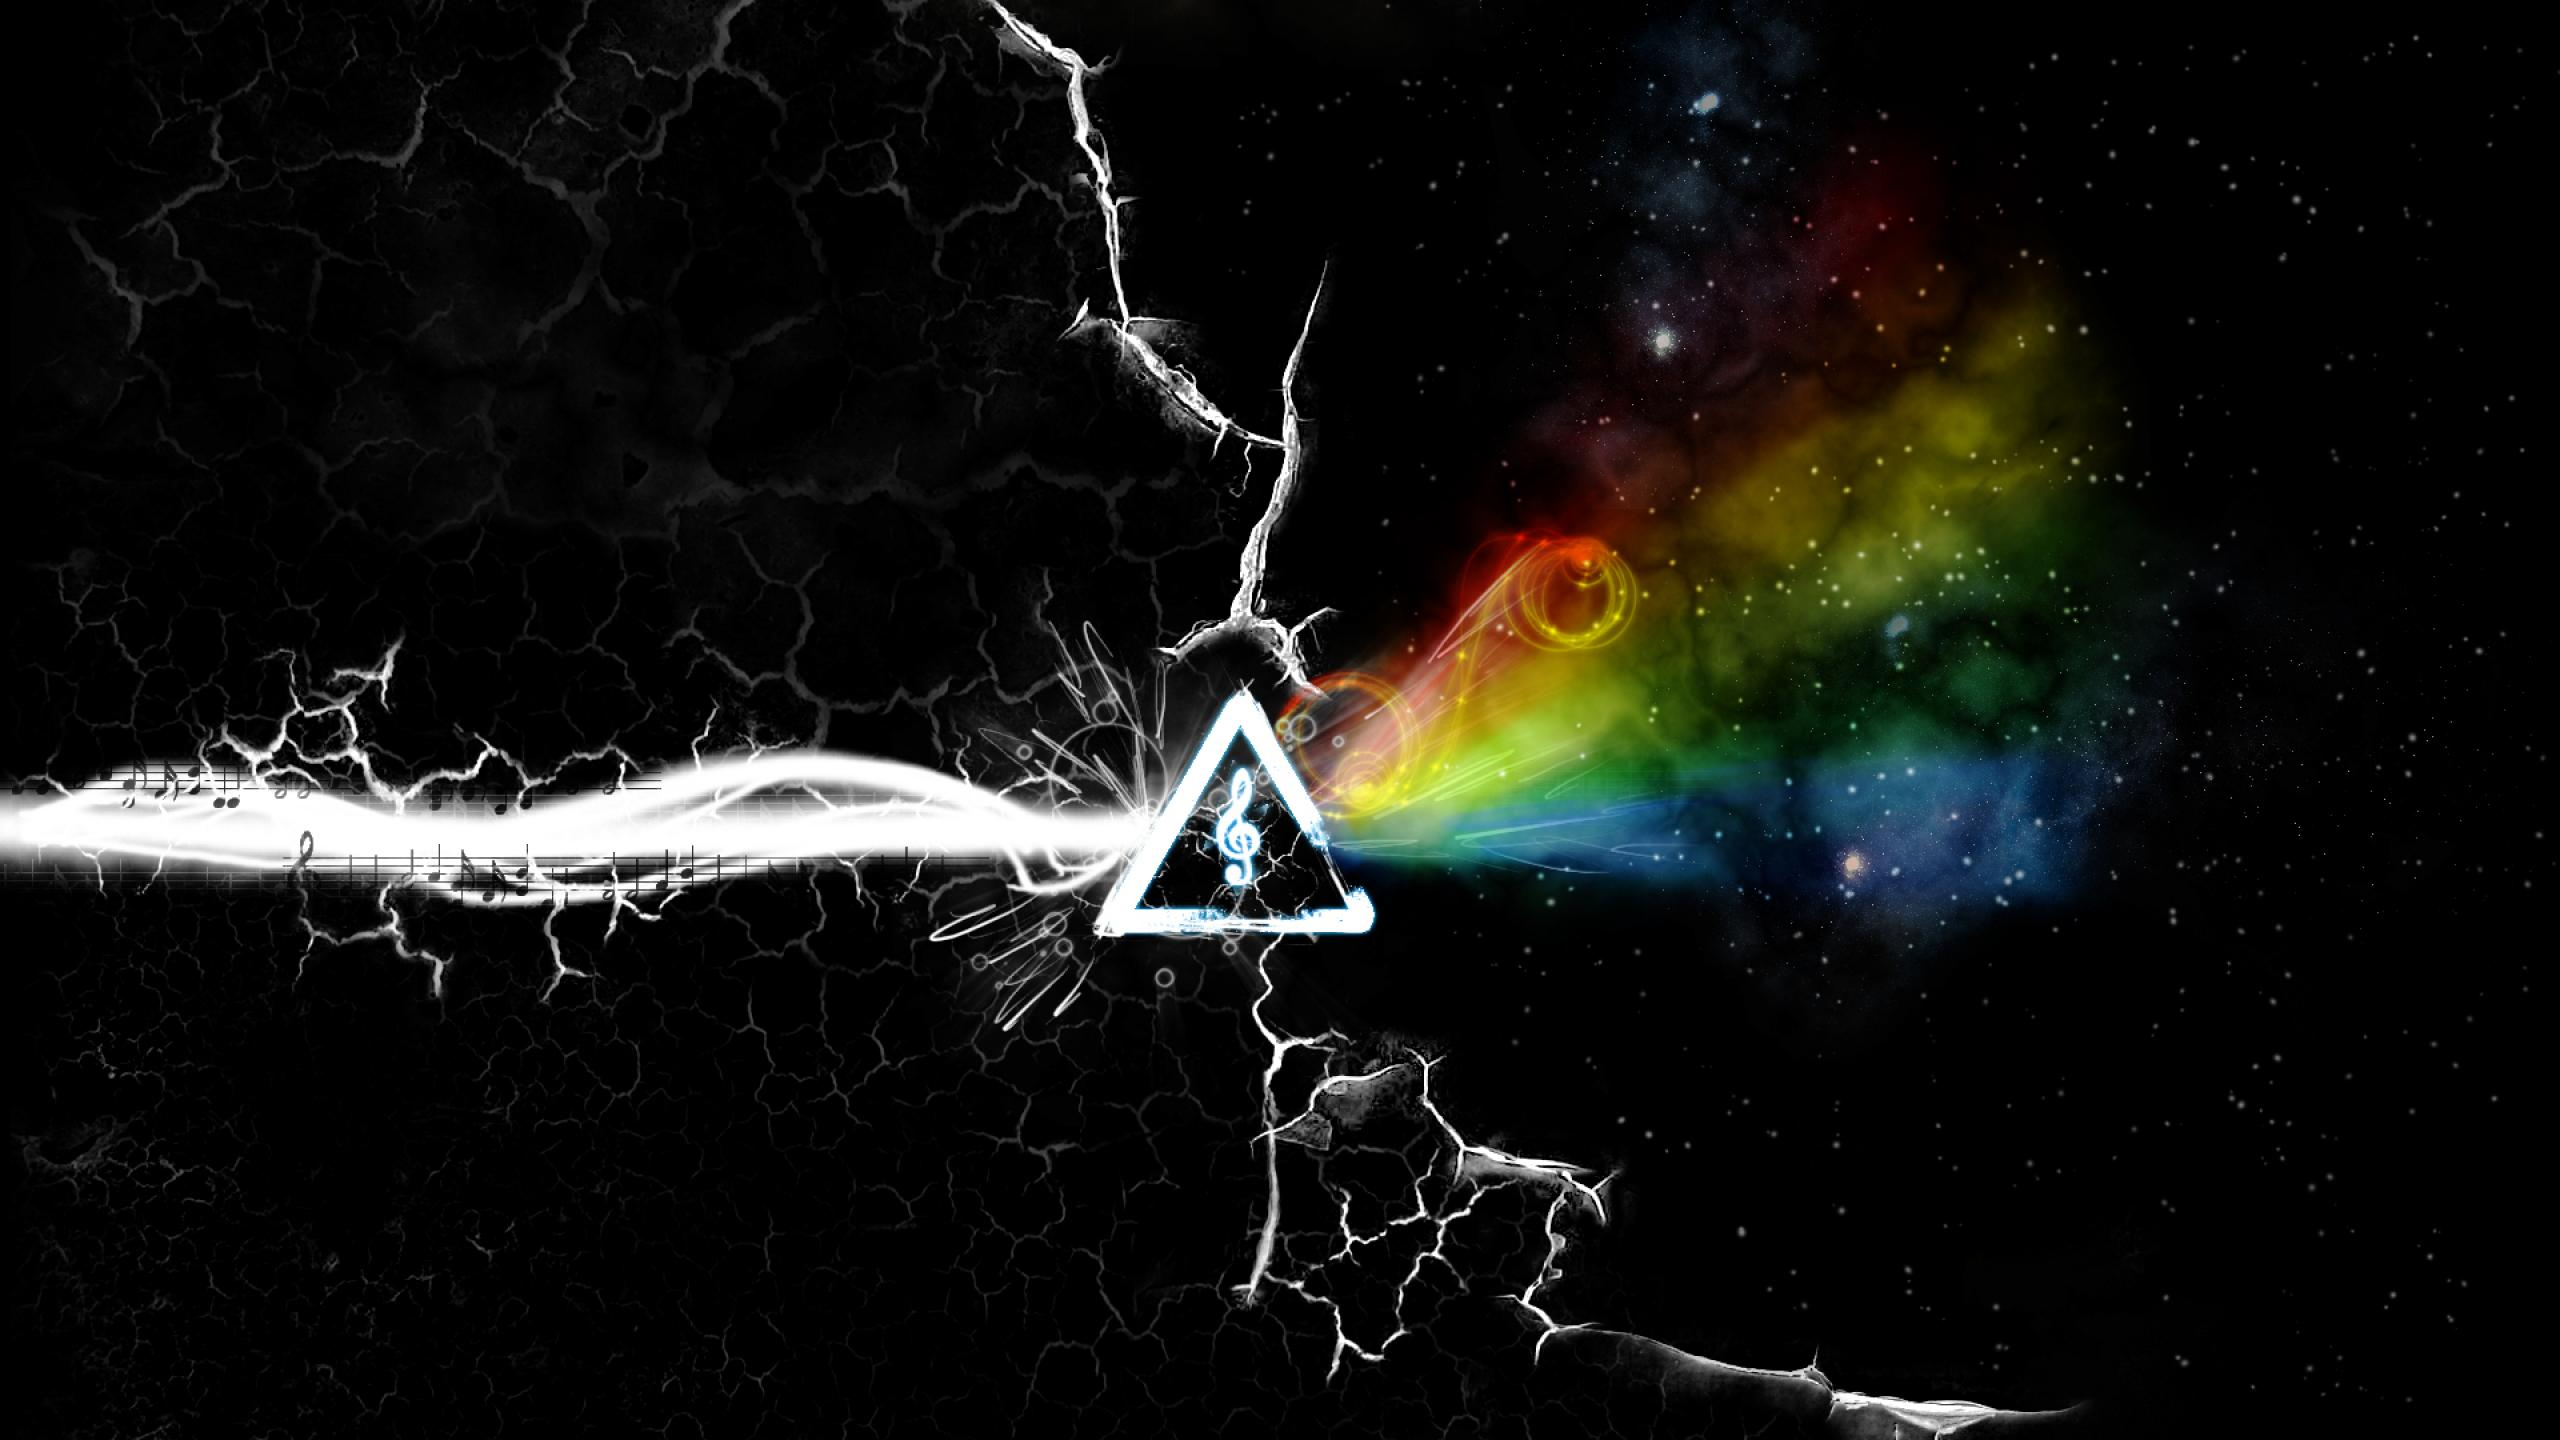 HD Pink Floyd Wallpapers 2560x1440